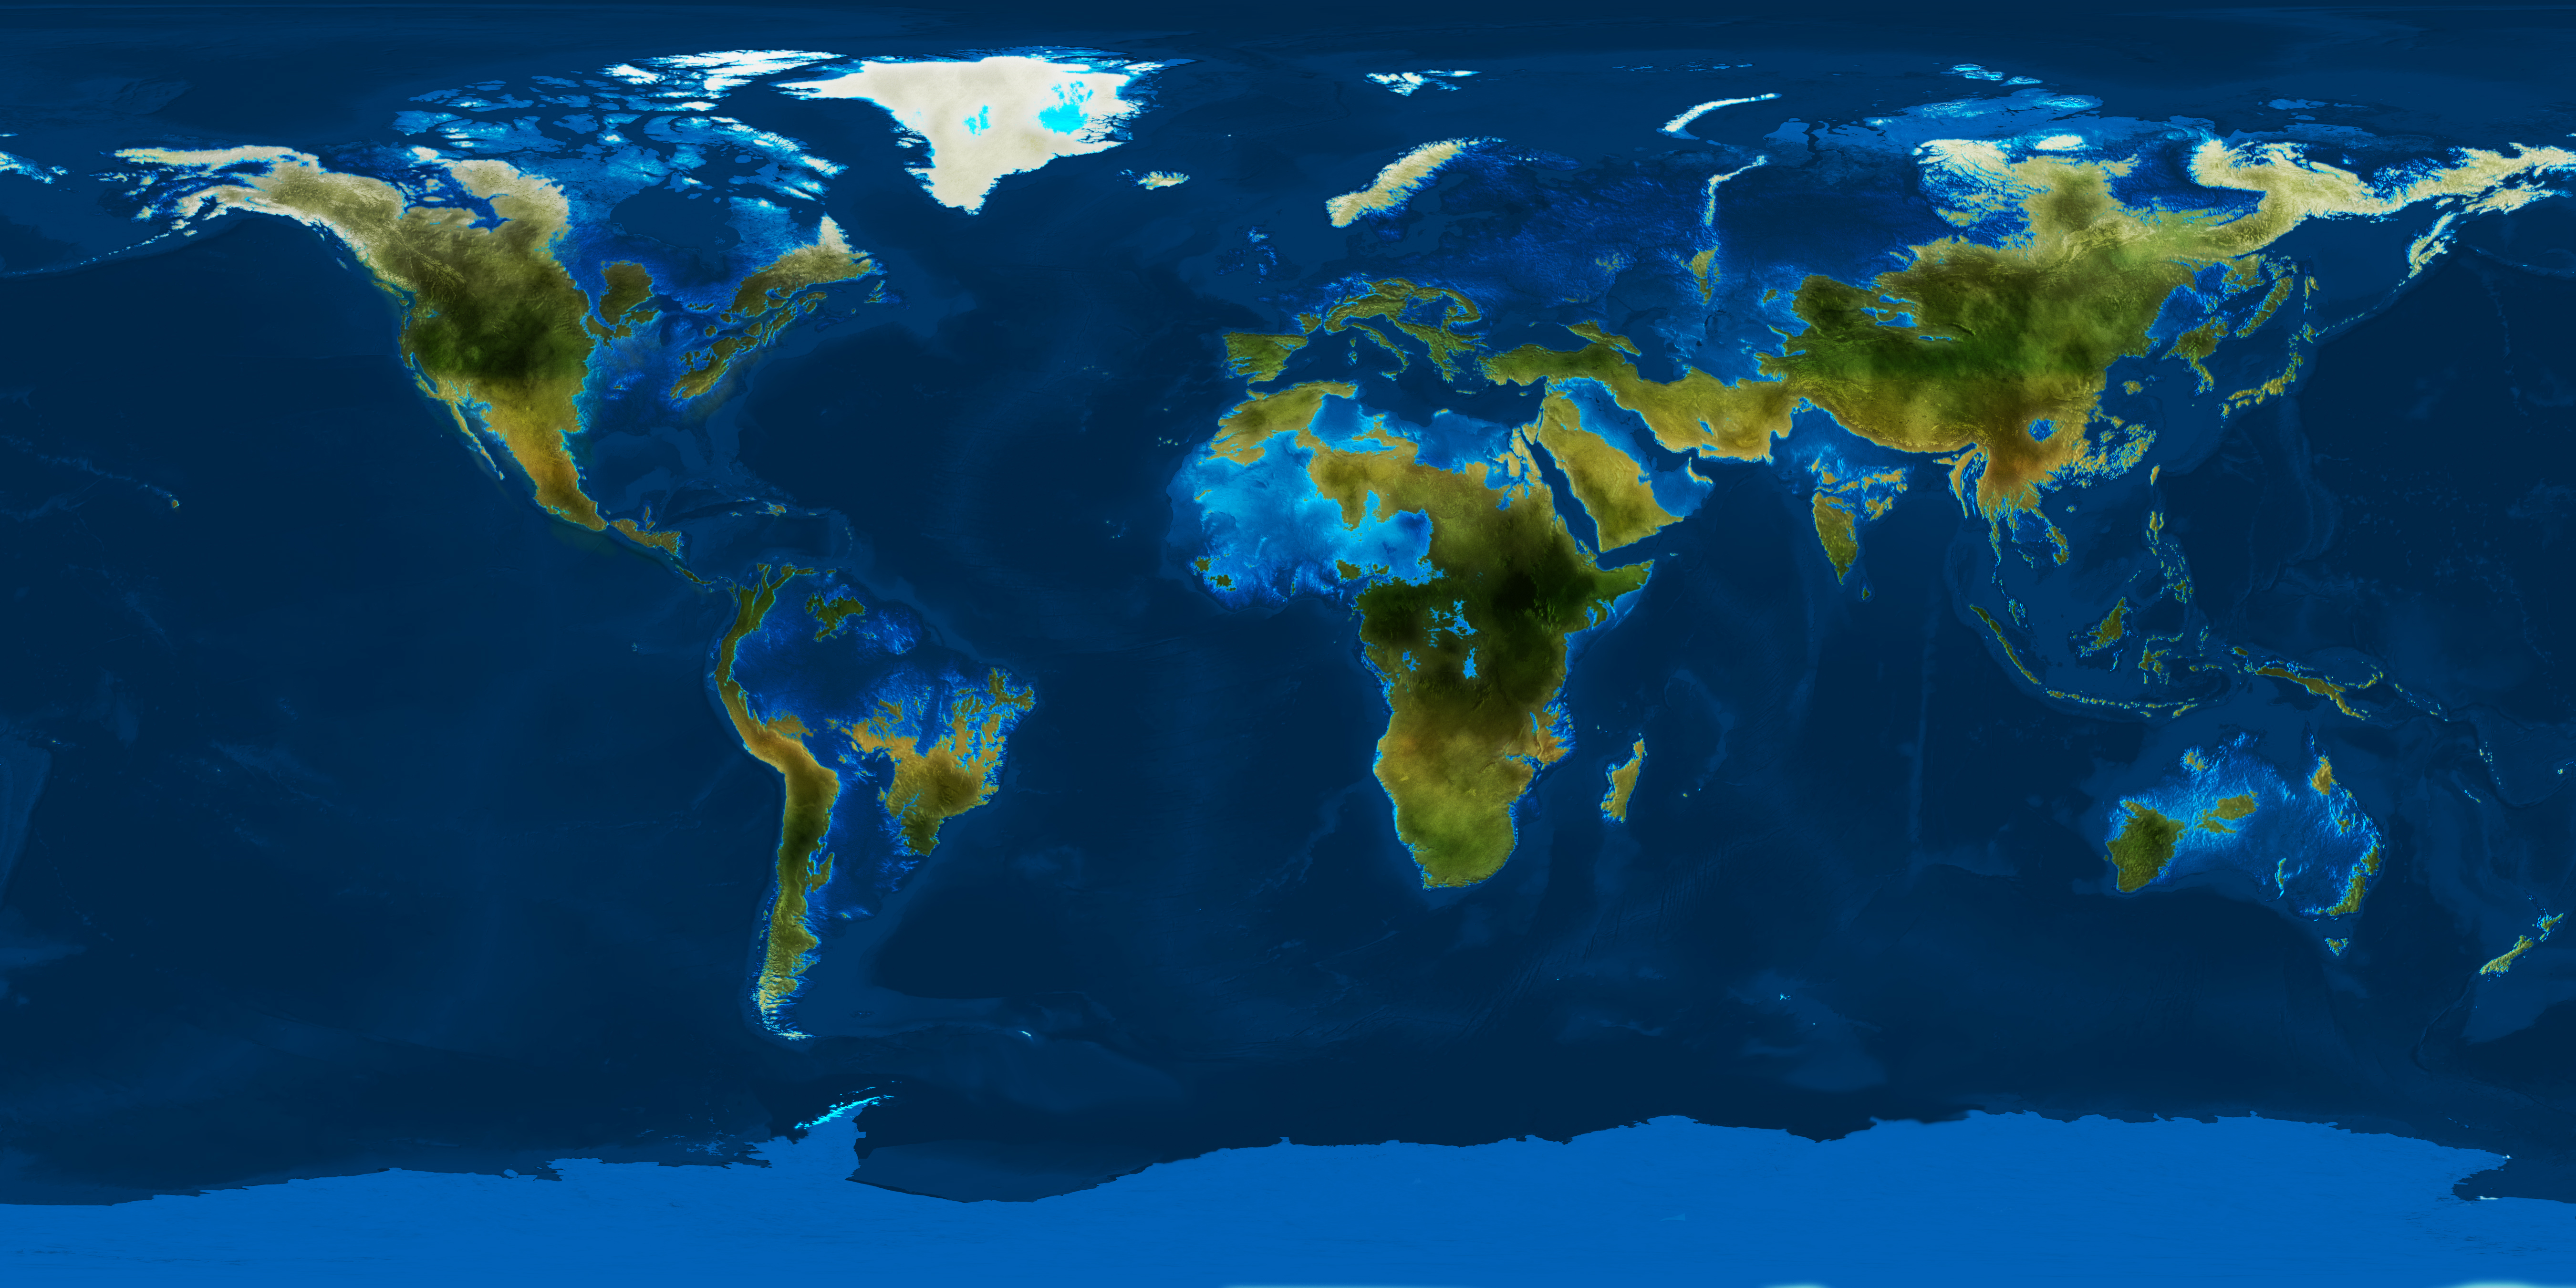 What will the continents look like in the future 10